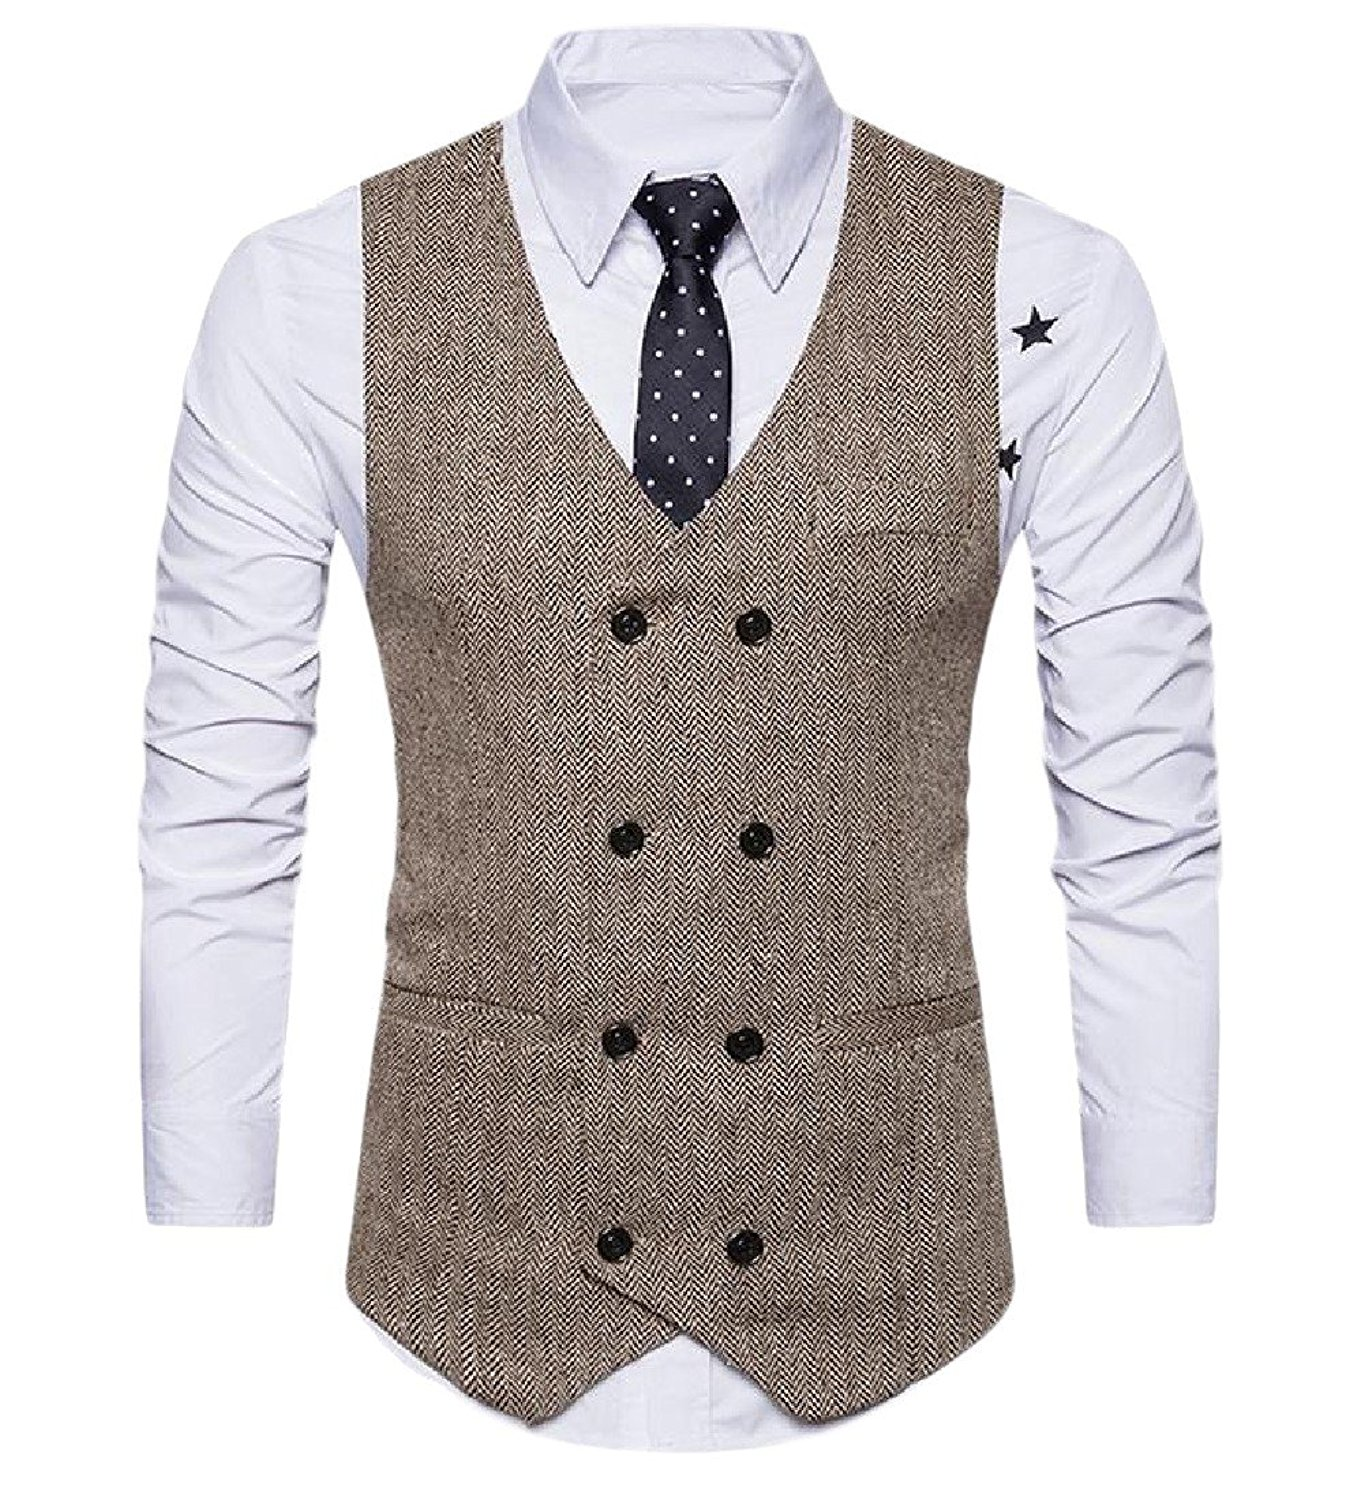 Coolred-Men Trim-Fit Solid Colored Double-Breasted Blazer Waistcoat